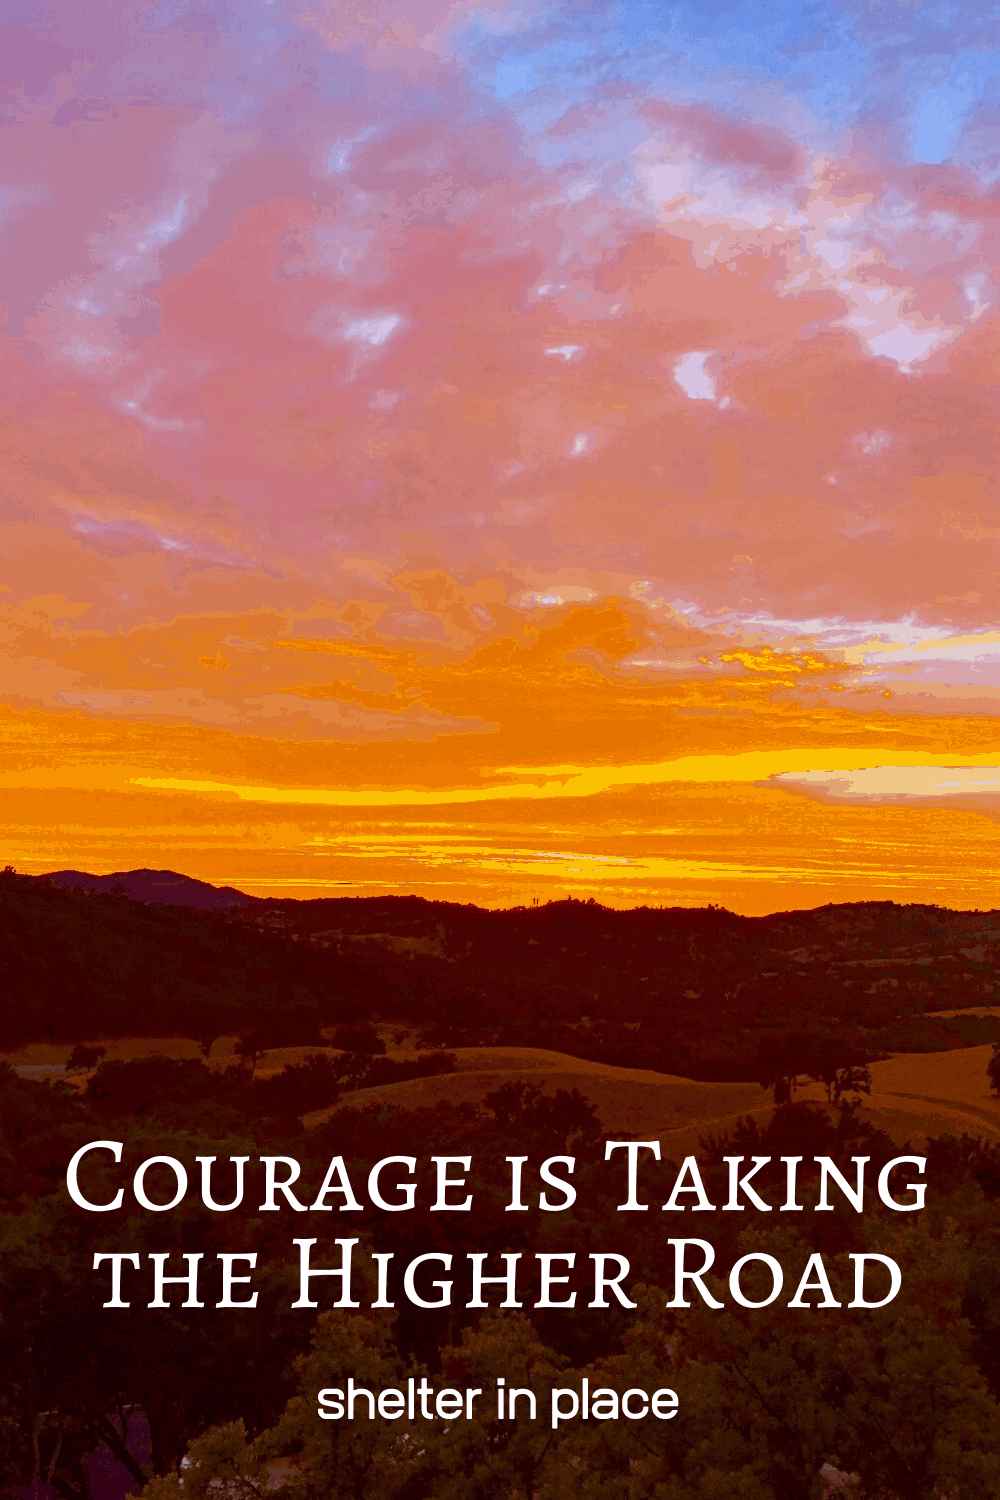 Courage is taking the higher road